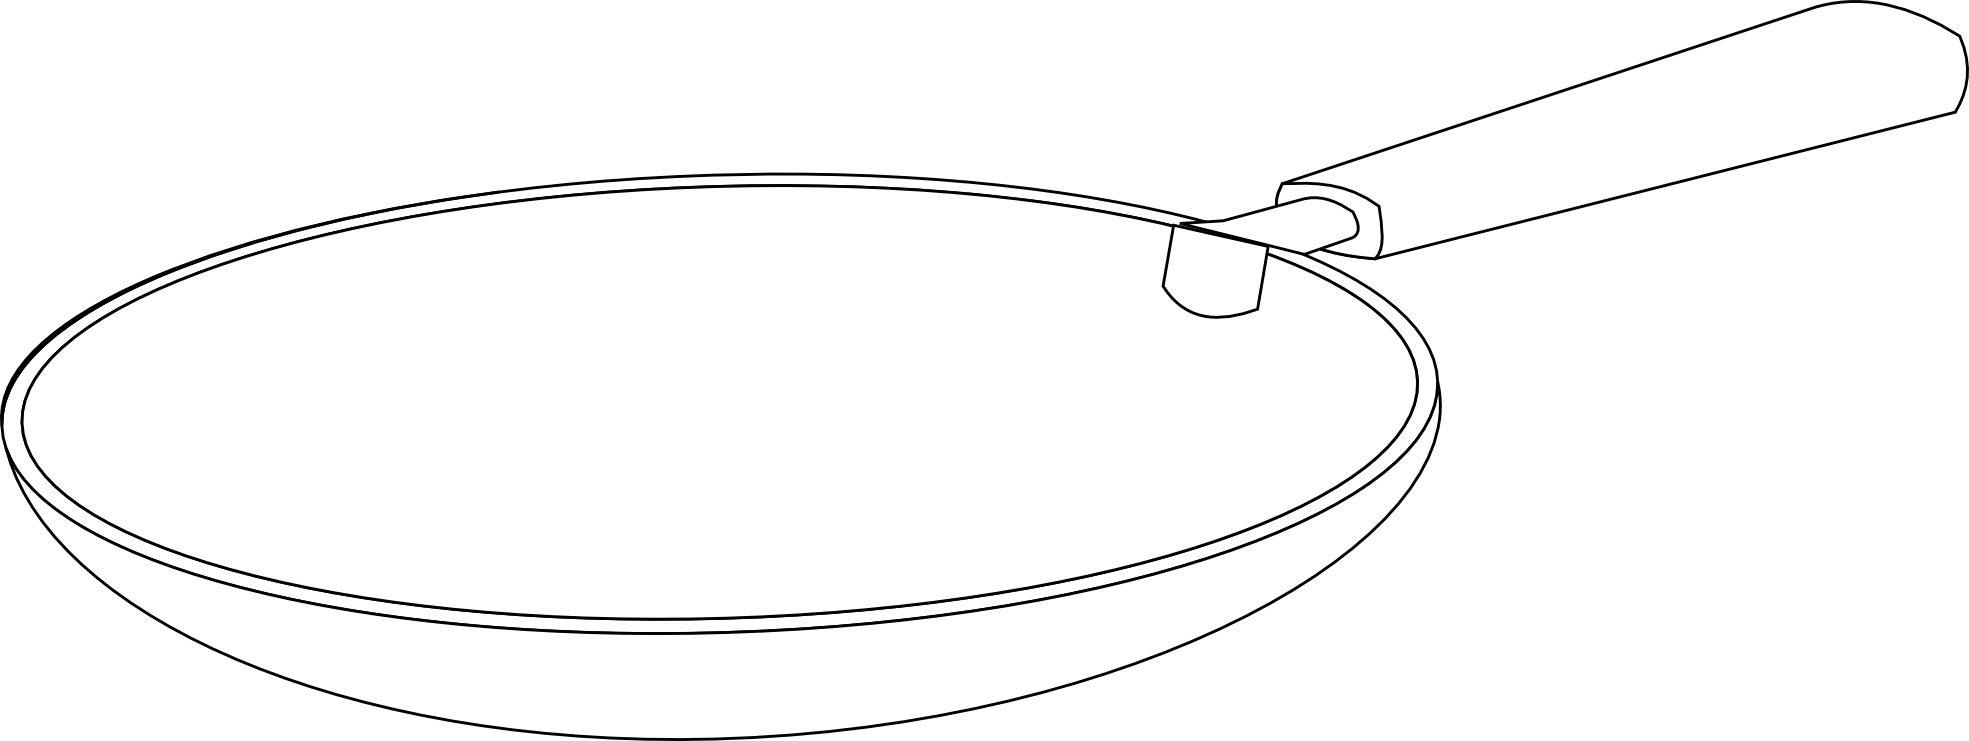 Food Padella Frying Pan Black White Line Art Scalable Vector Graphics